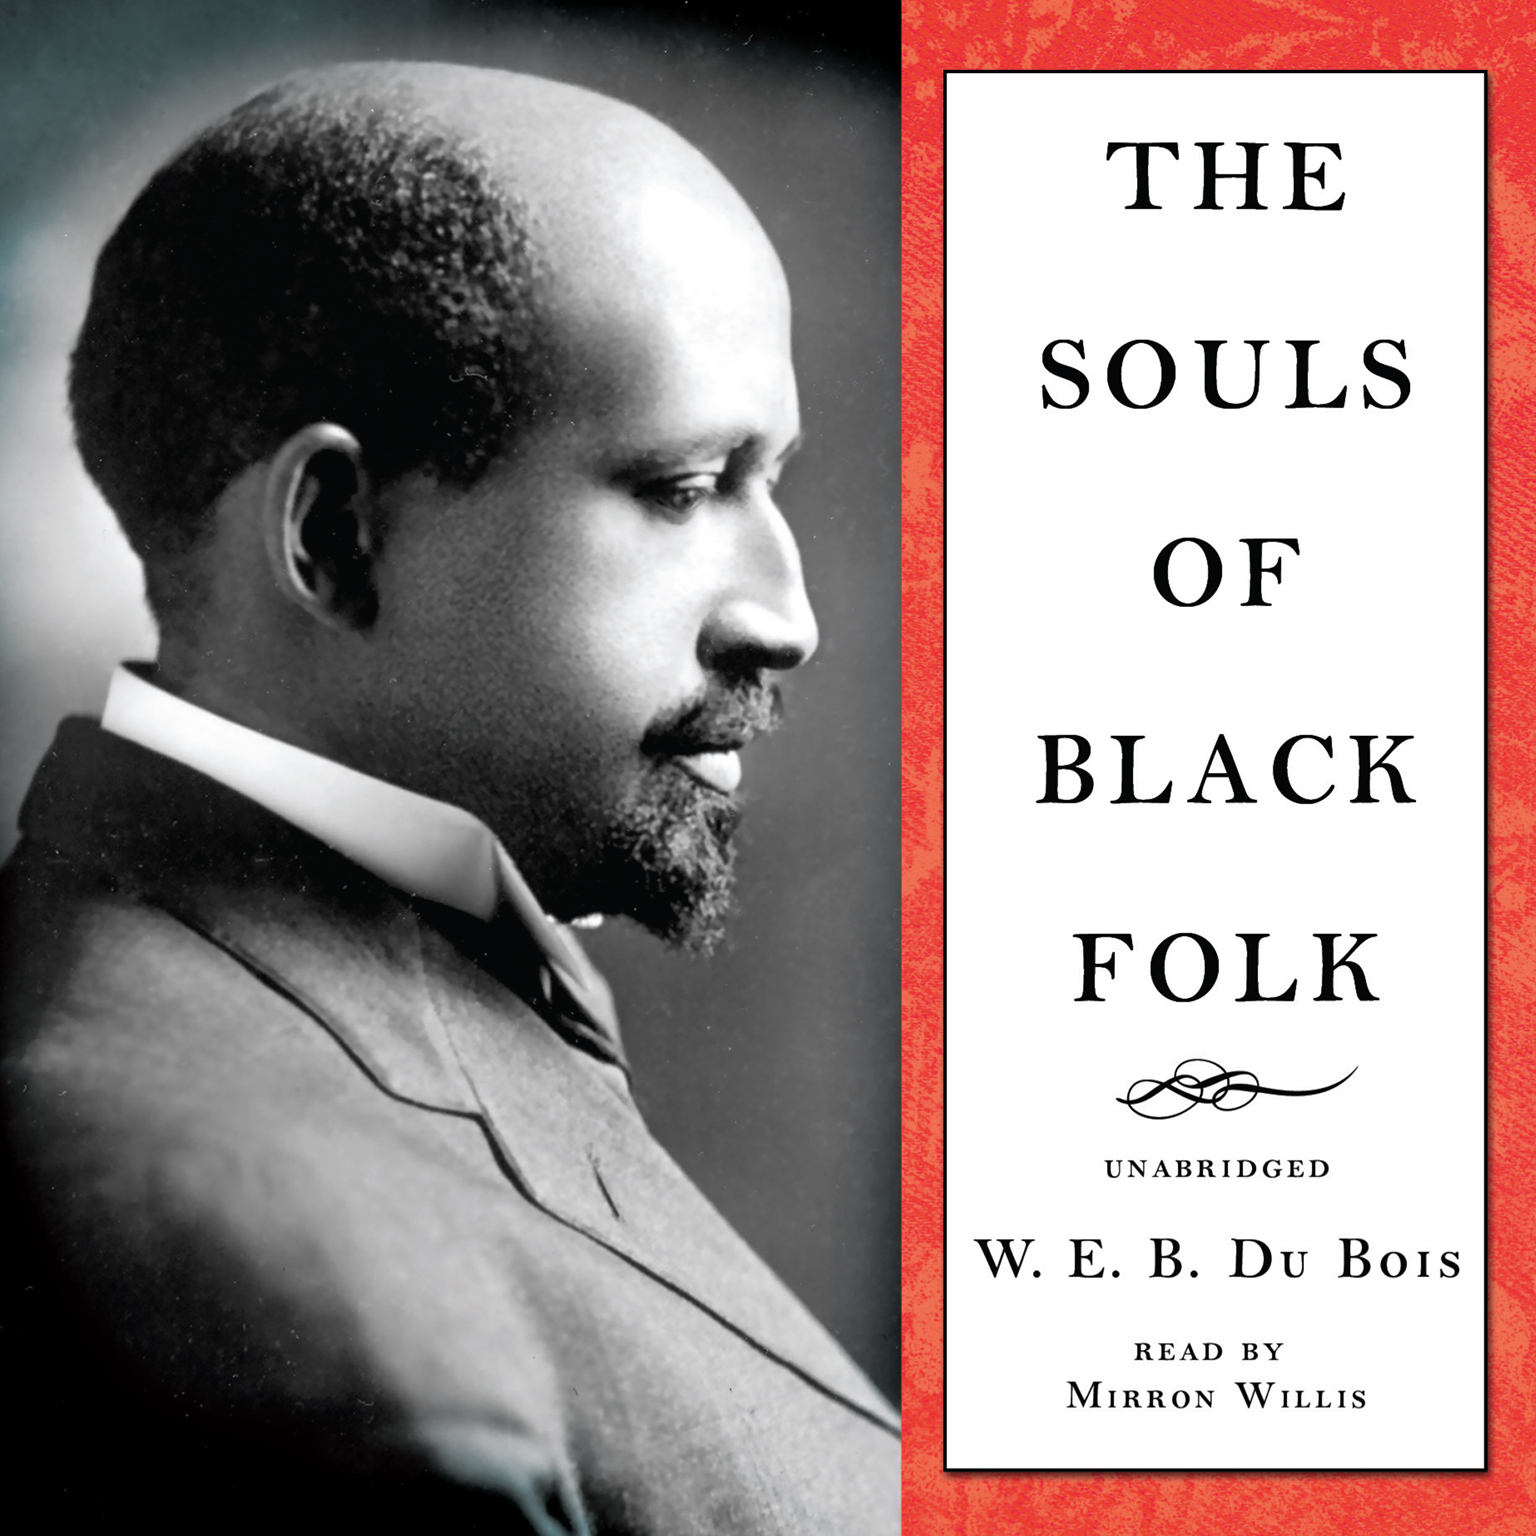 Essay On Environment Hear The Souls Of Black Folk Audiobook By W E B Du Bois By Extended Audio  Sample The Adoption Argumentative Essay Essays On Antigone also Example Of A Good Descriptive Essay W E B Dubois Essay W E B Du Bois The Souls Of Black Folk As An  Personal Culture Essay